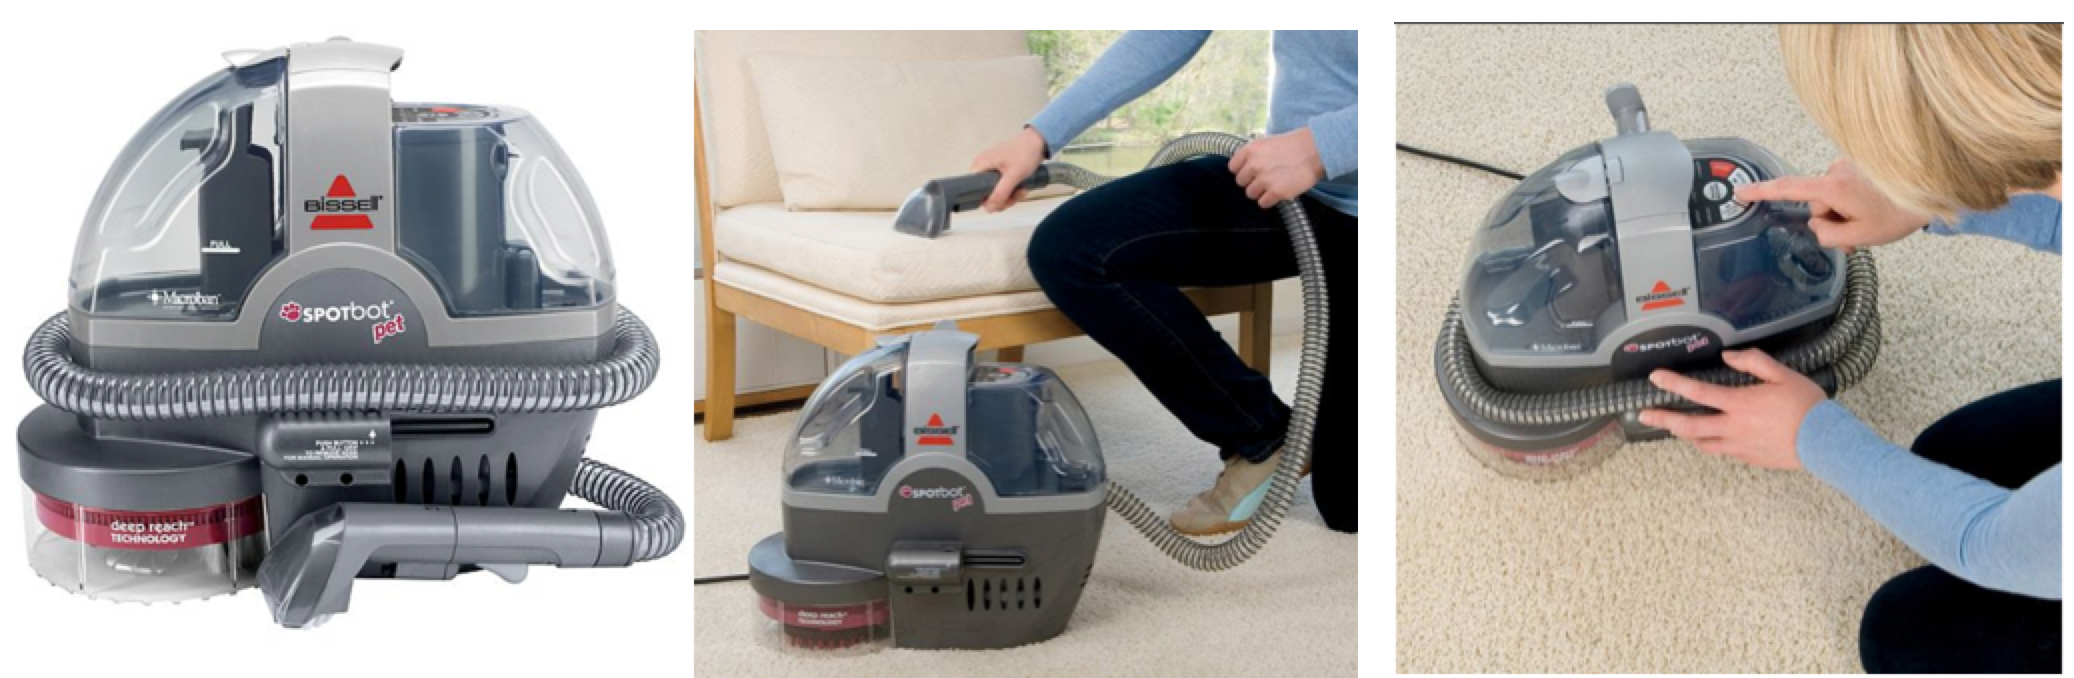 Kohl S Bissell Spot Bot Pet Portable Carpet Cleaner Only